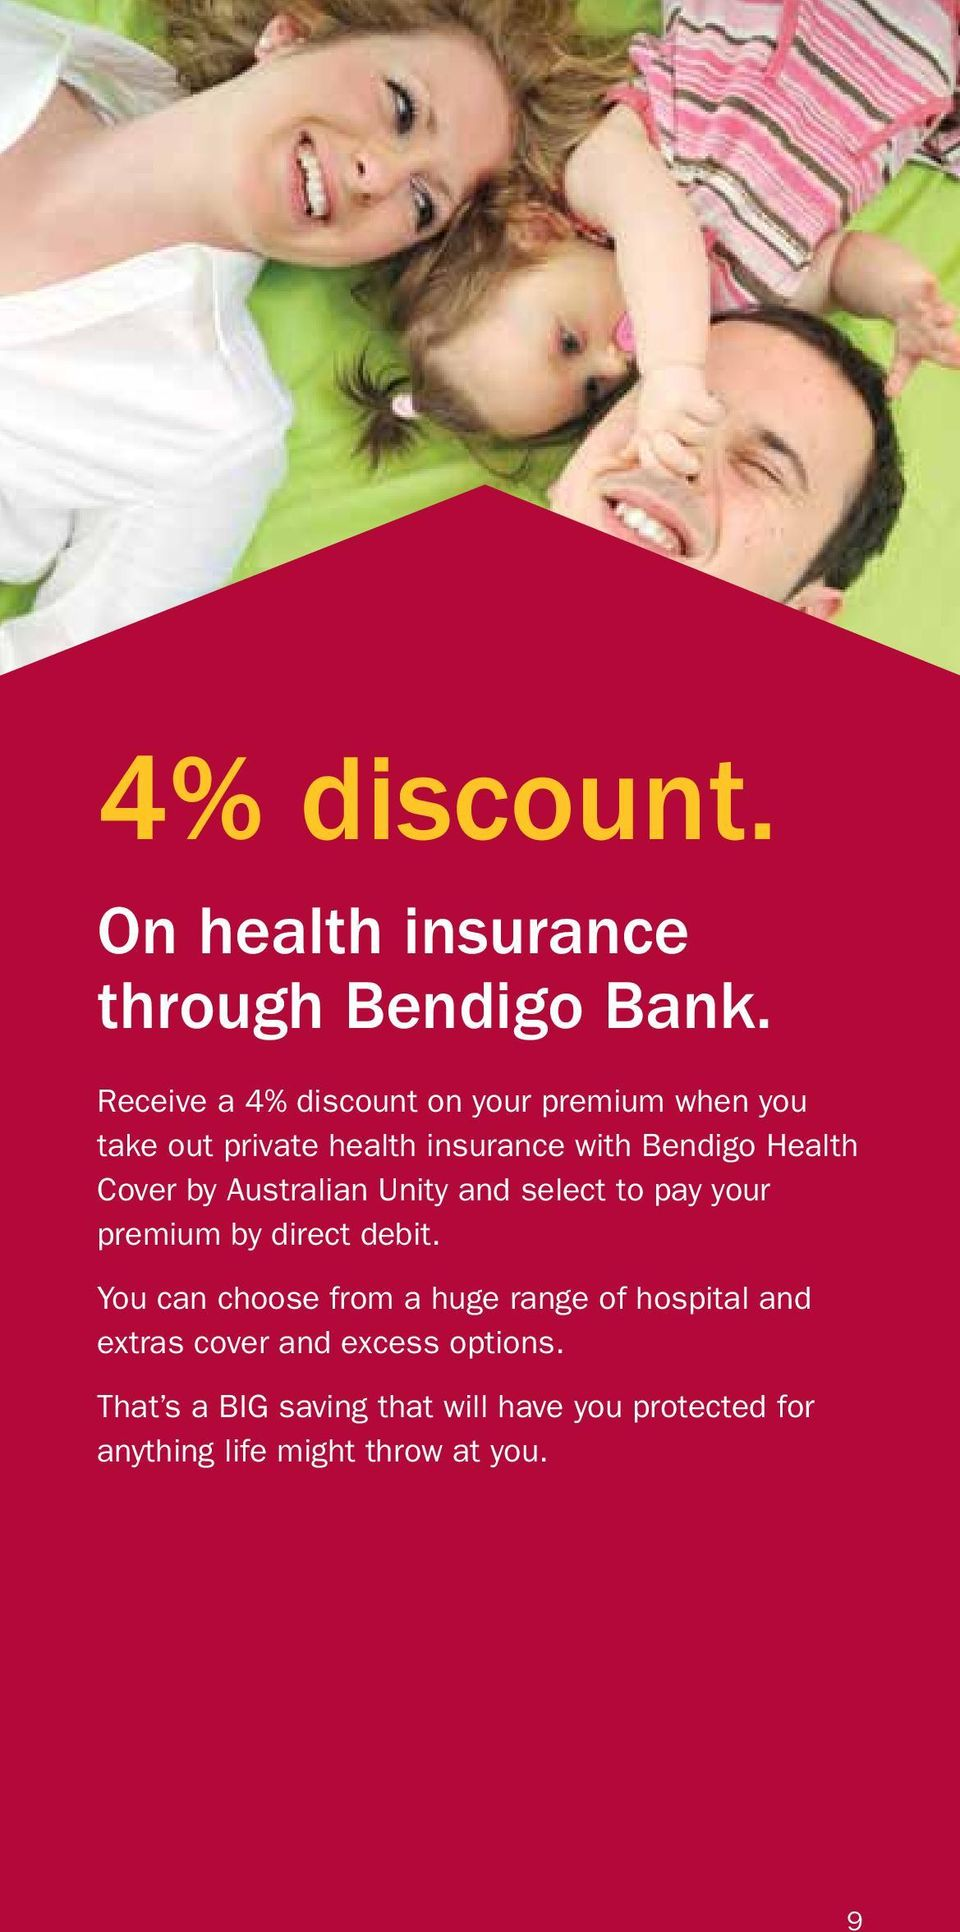 Health Cover by Australian Unity and select to pay your premium by direct debit.